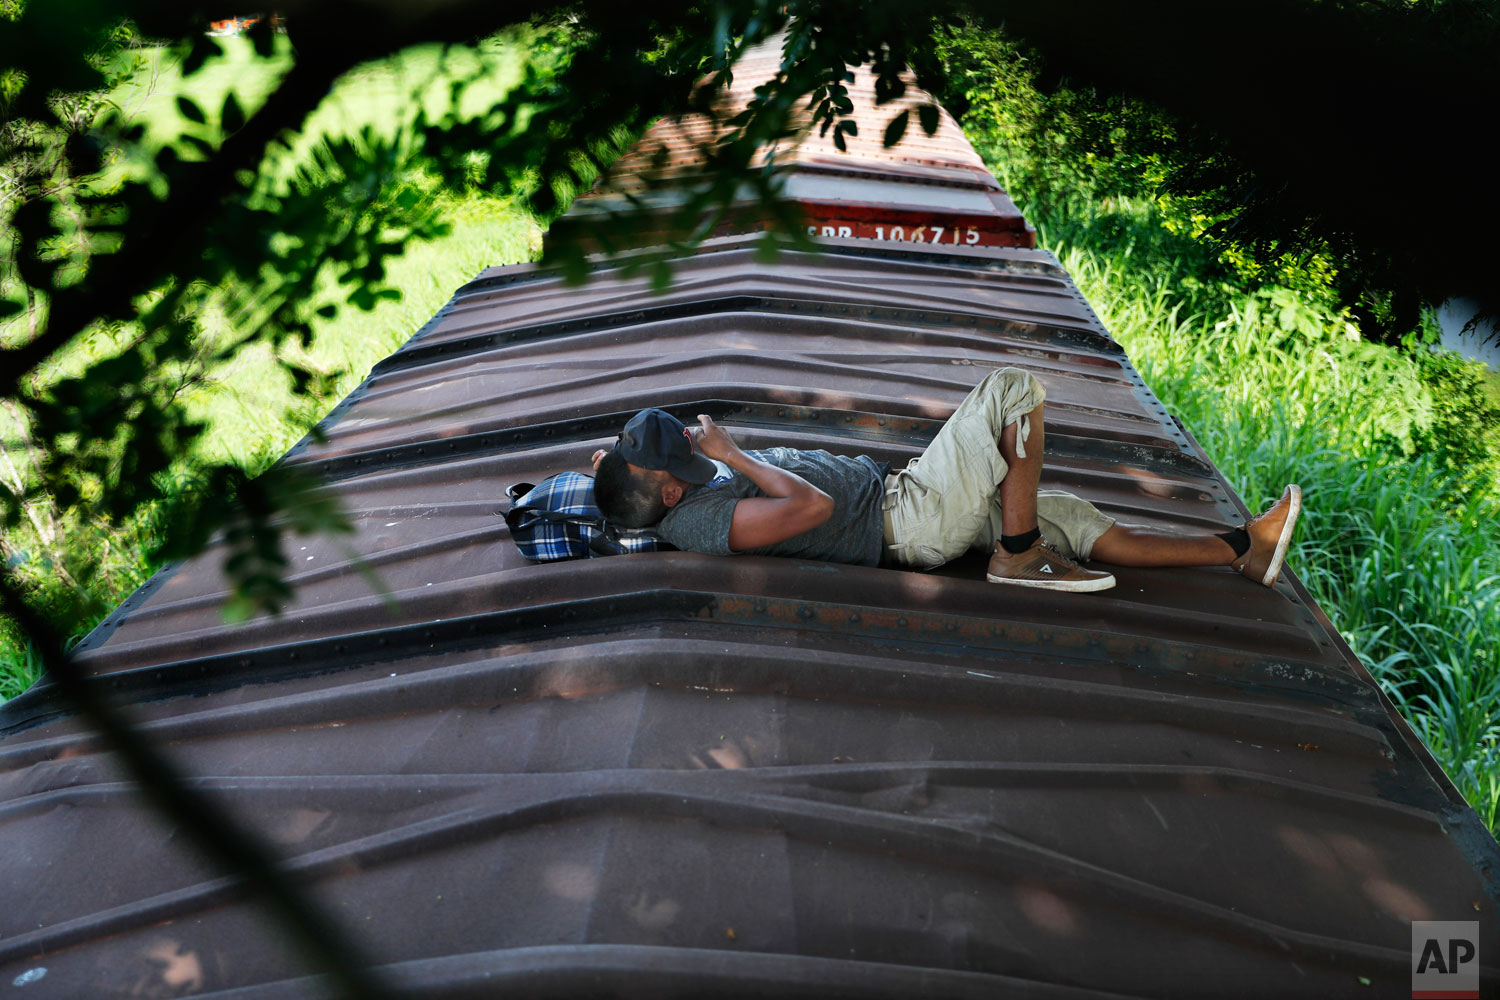 A Honduran migrant ride a freight train on their way north, in Salto del Agua, Chiapas state, Mexico, Tuesday, June 25, 2019.  (AP Photo/Marco Ugarte)